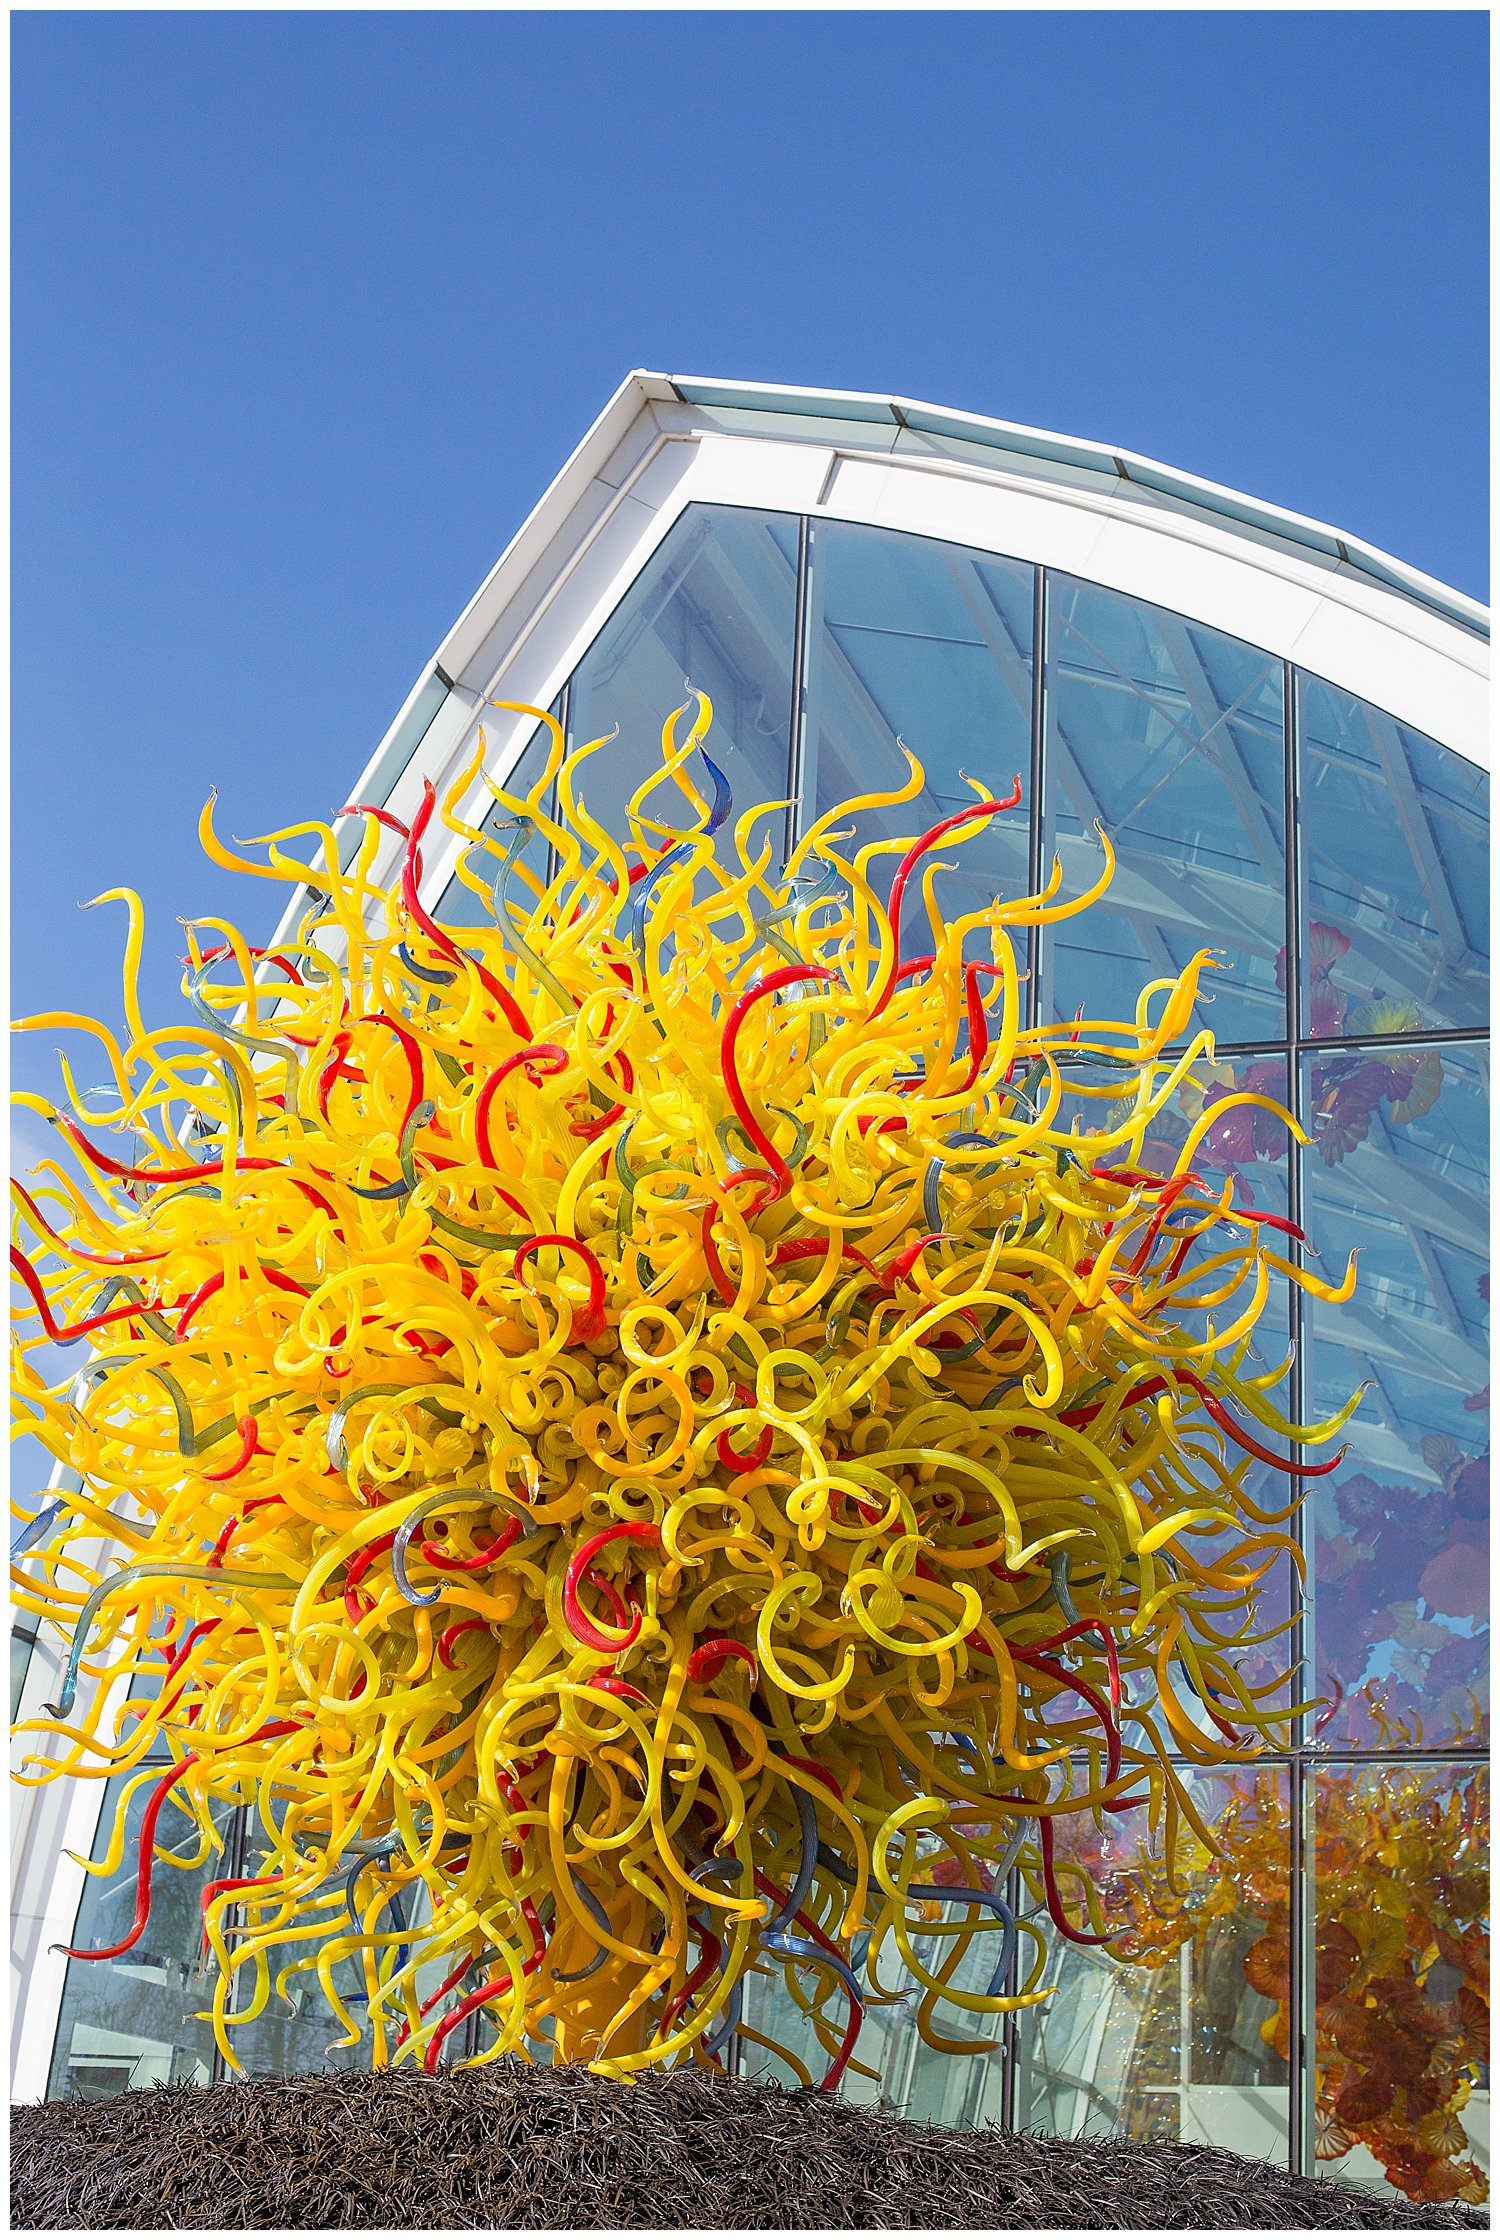 The Chihuly Gardens are absolutey amazing!